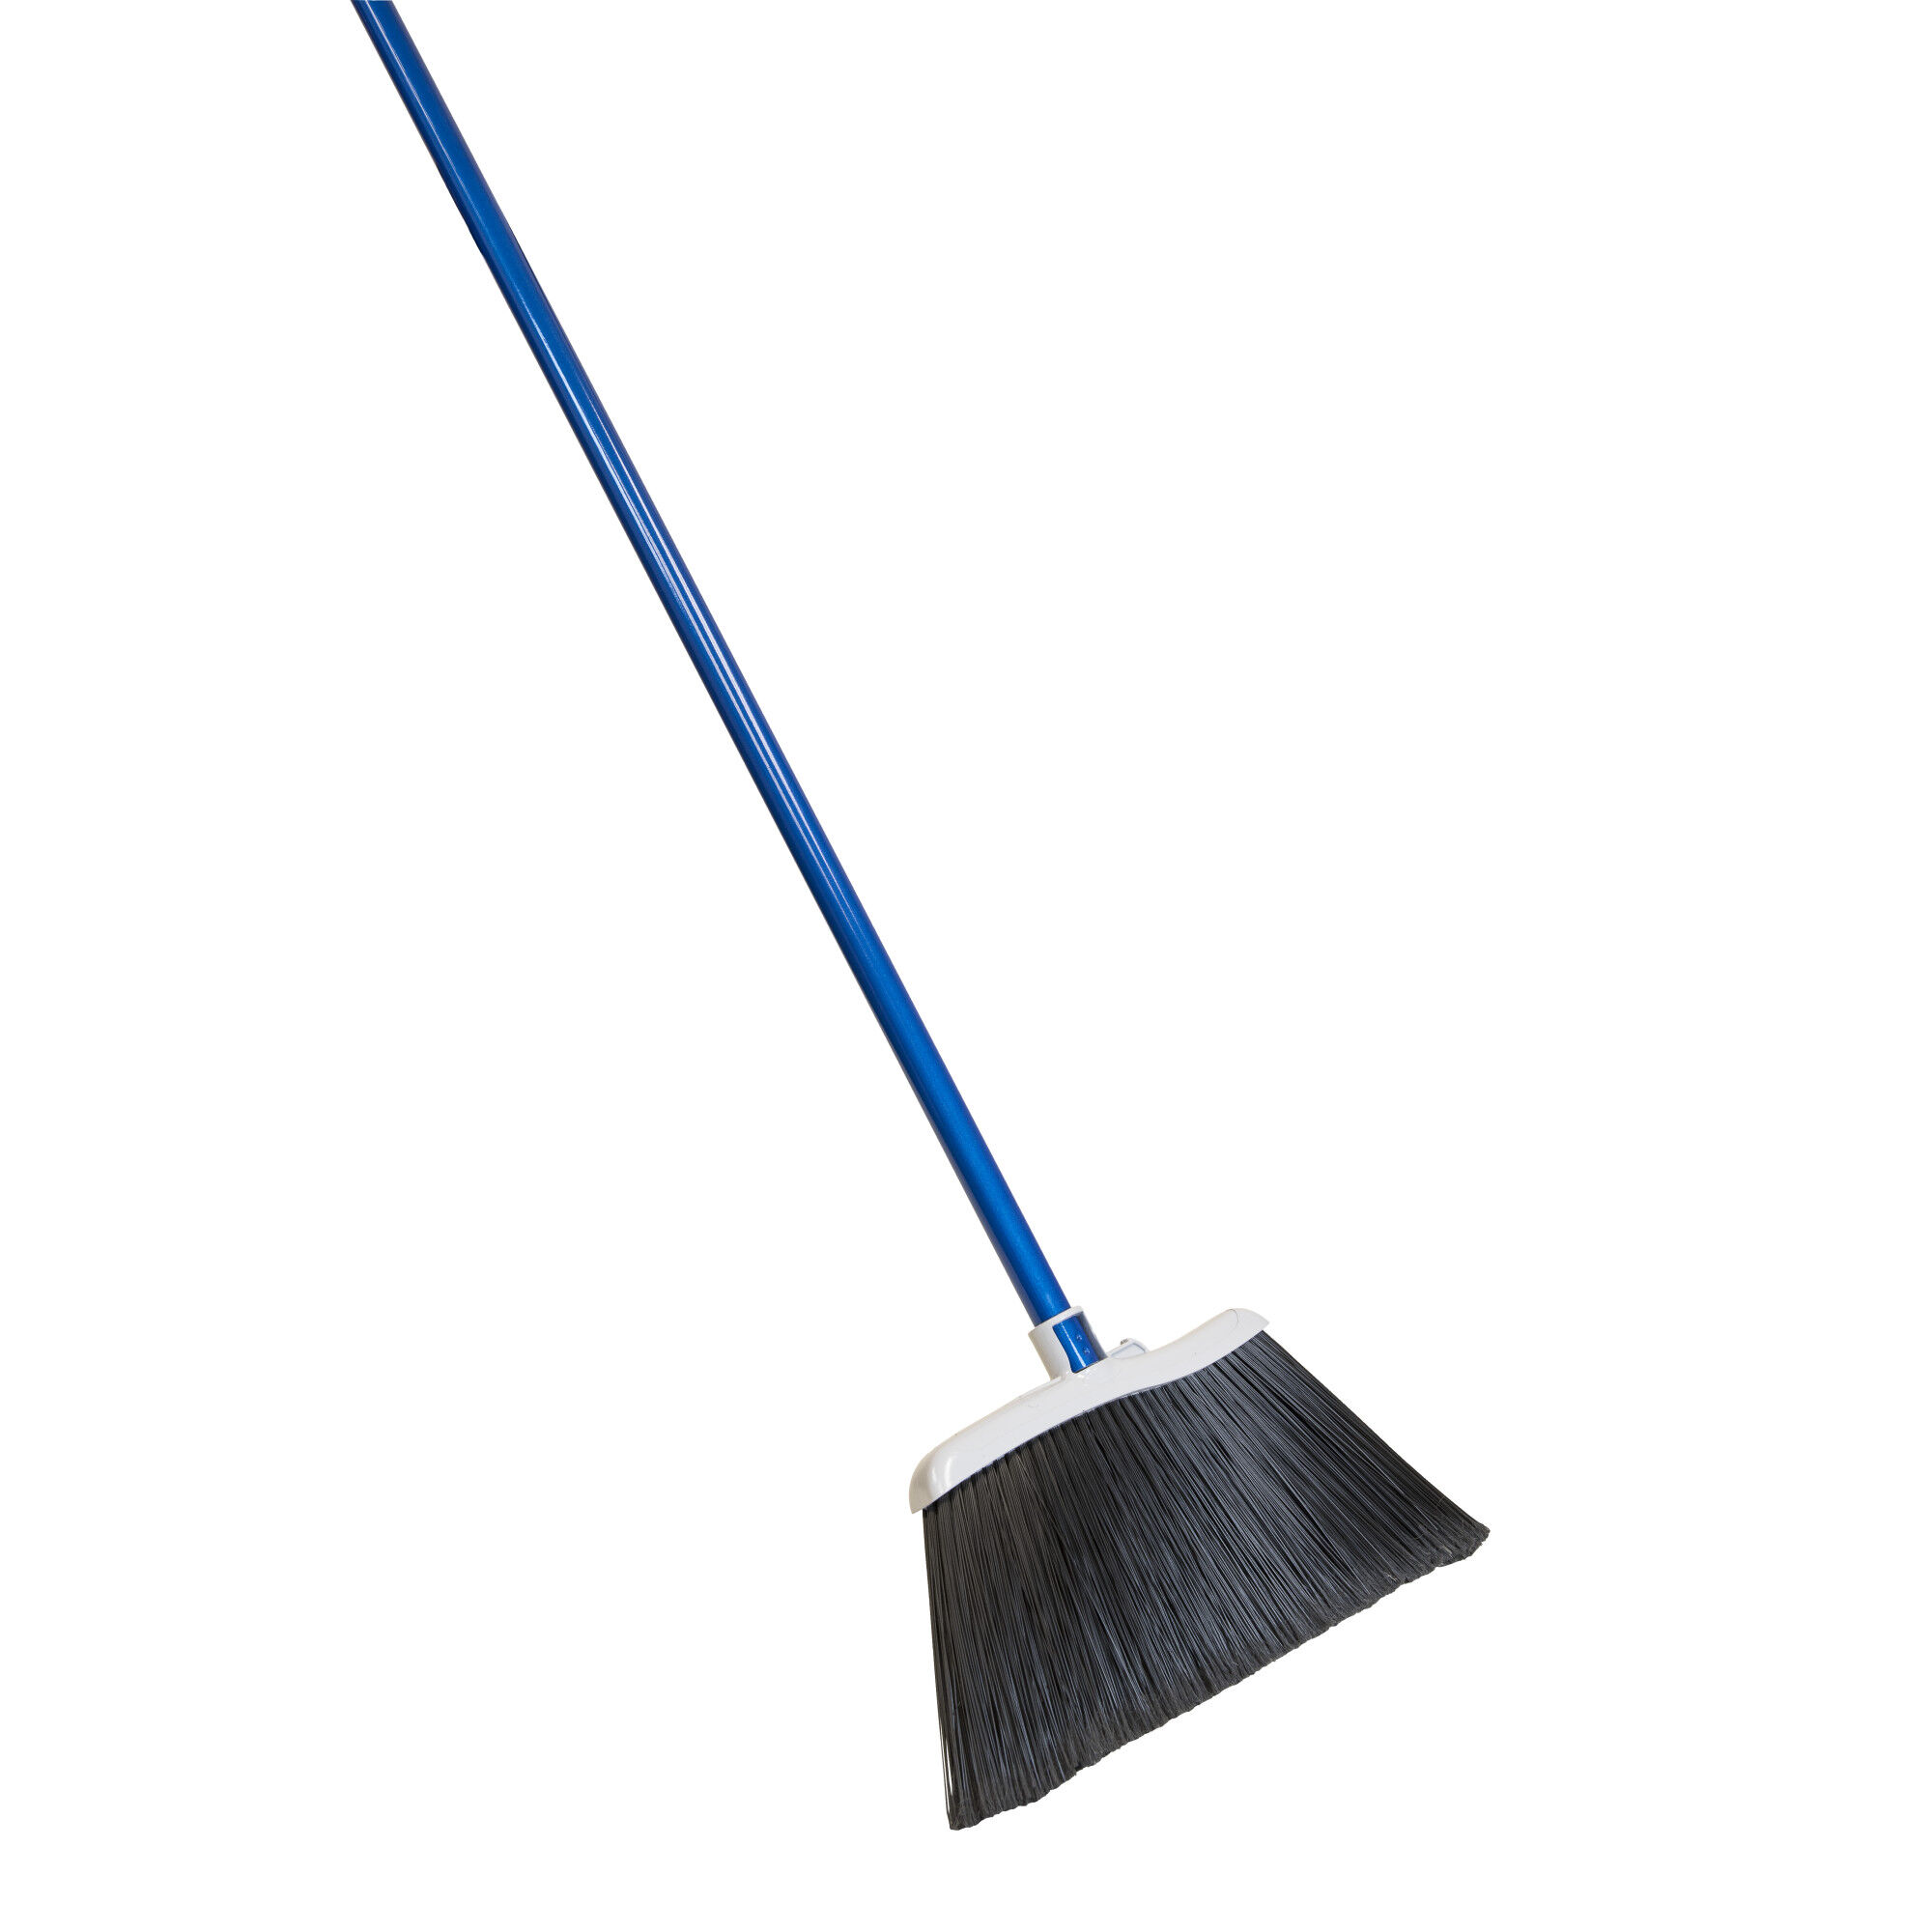 Quickie Angle Broom Quickie Cleaning Tools